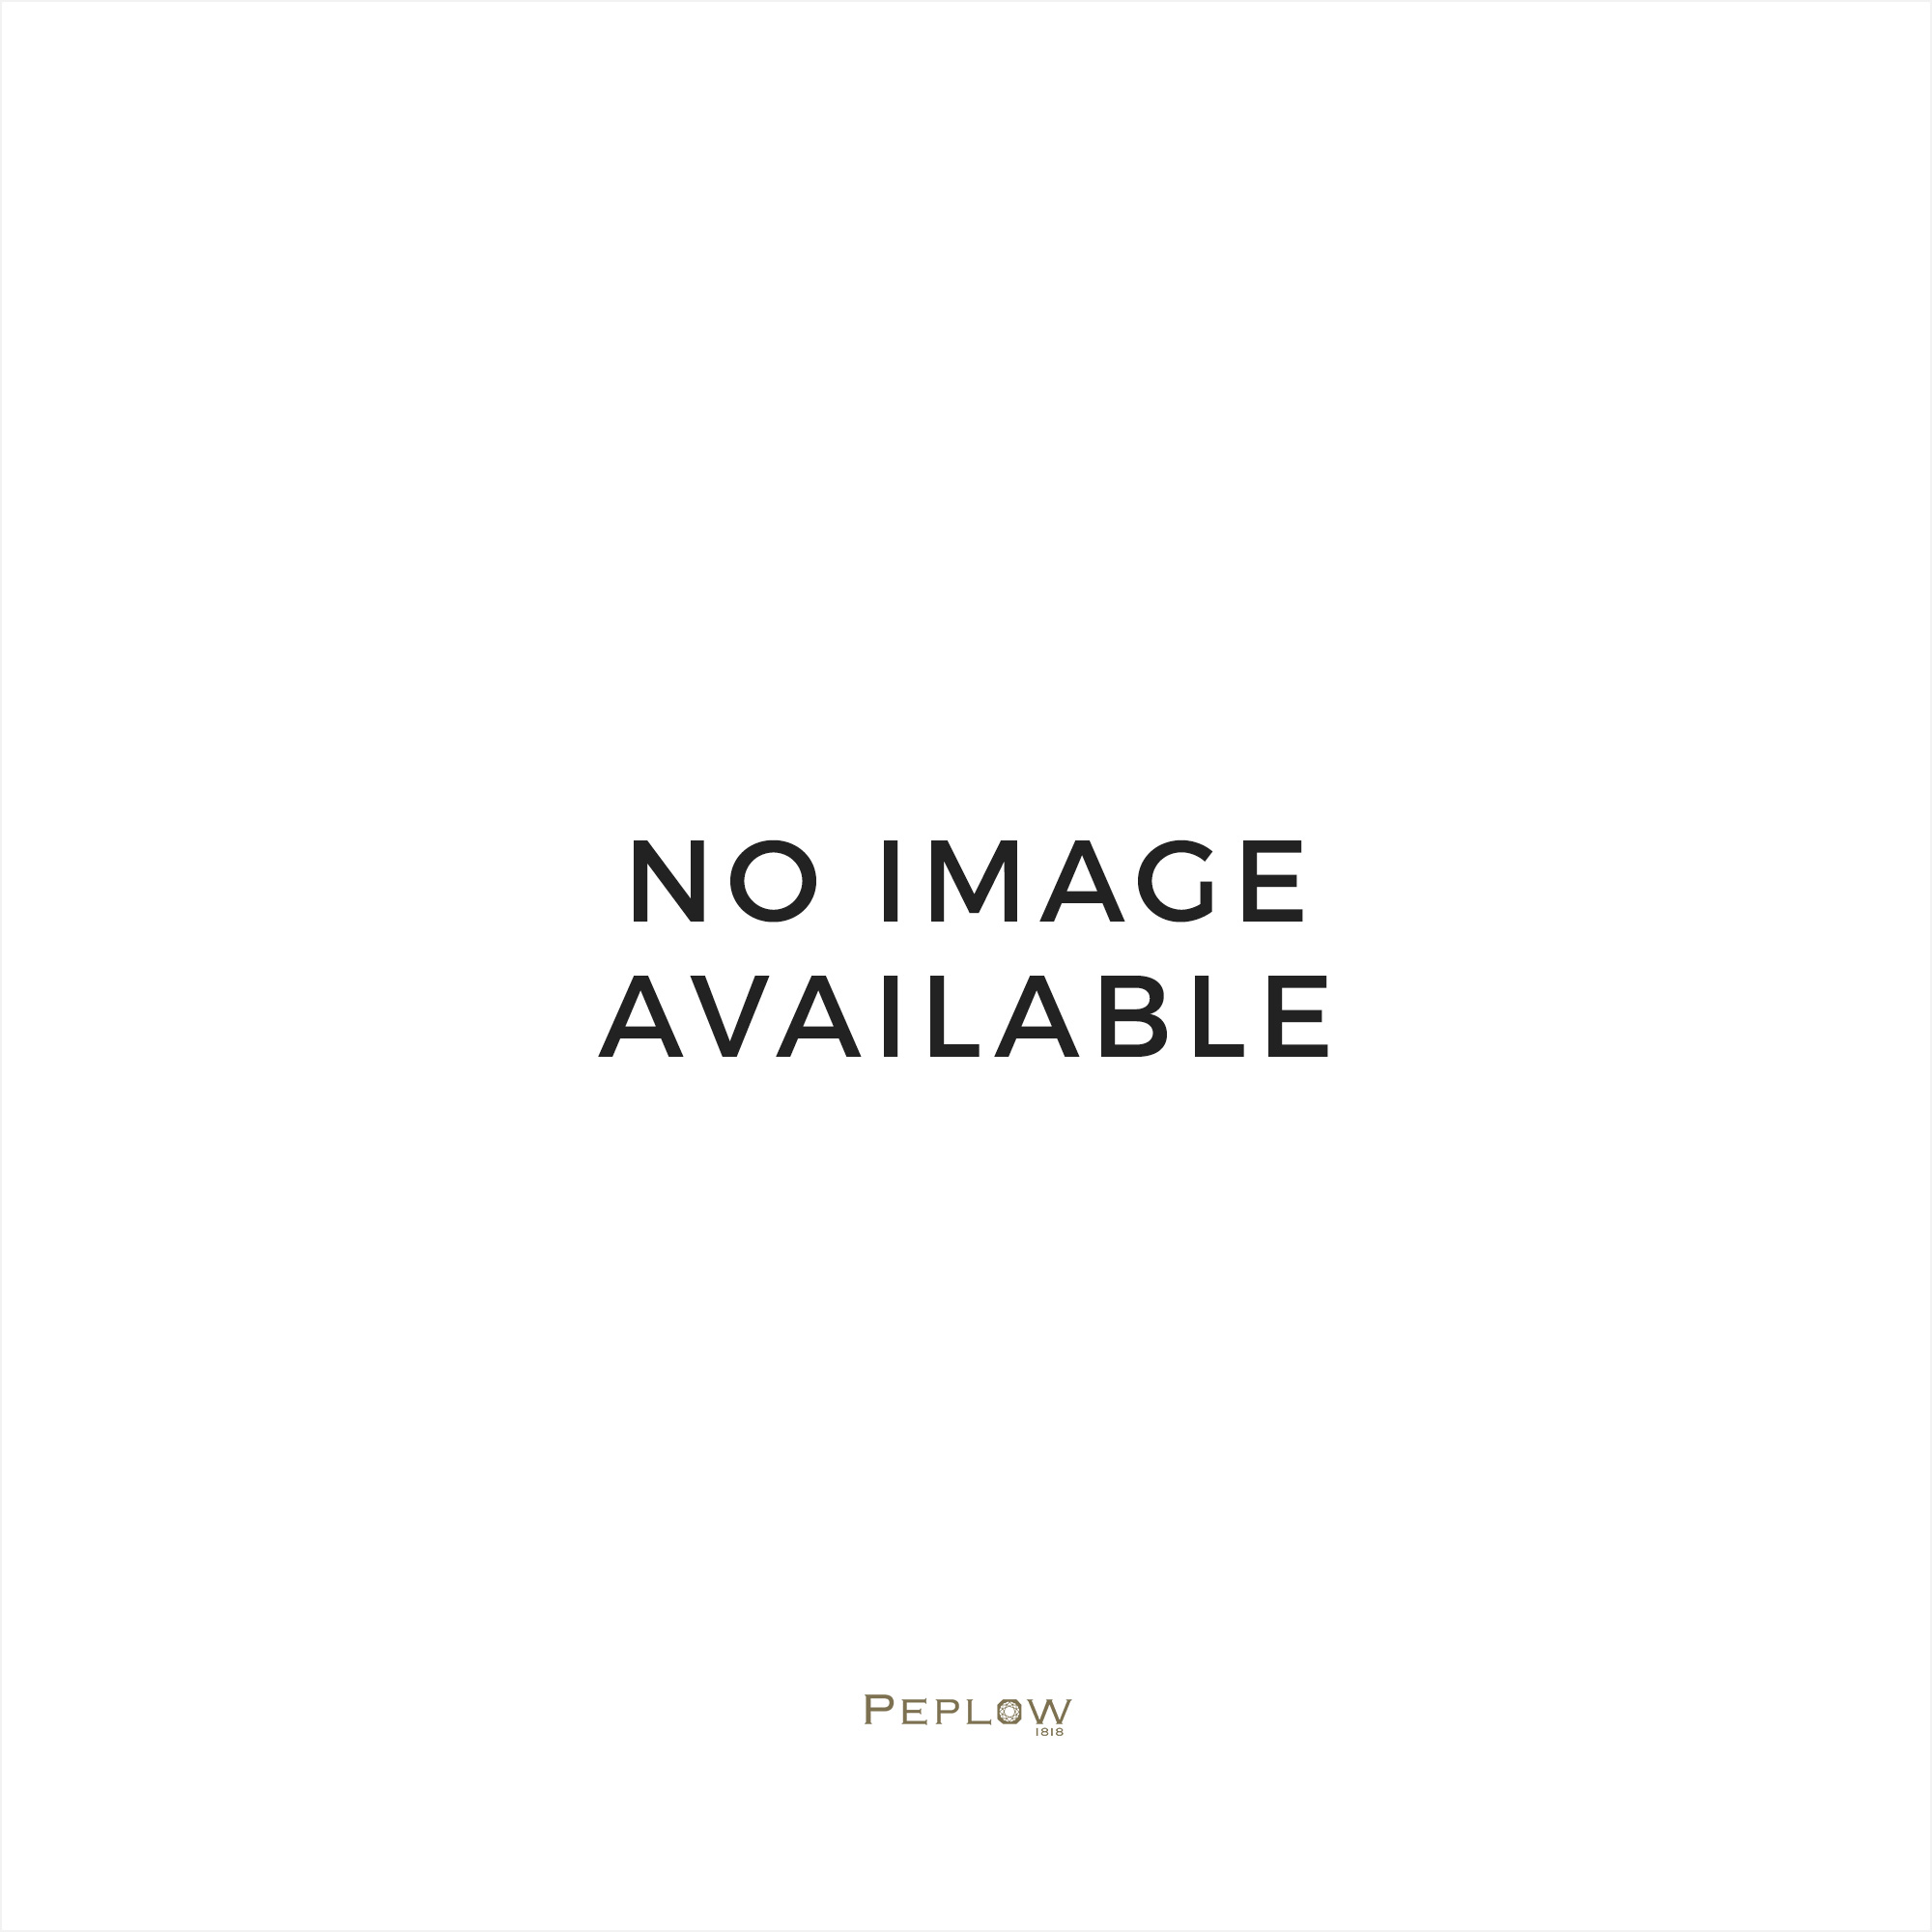 Citizen Watches Citizen Gents Eco Drive on Black Strap Watch A09020-17H